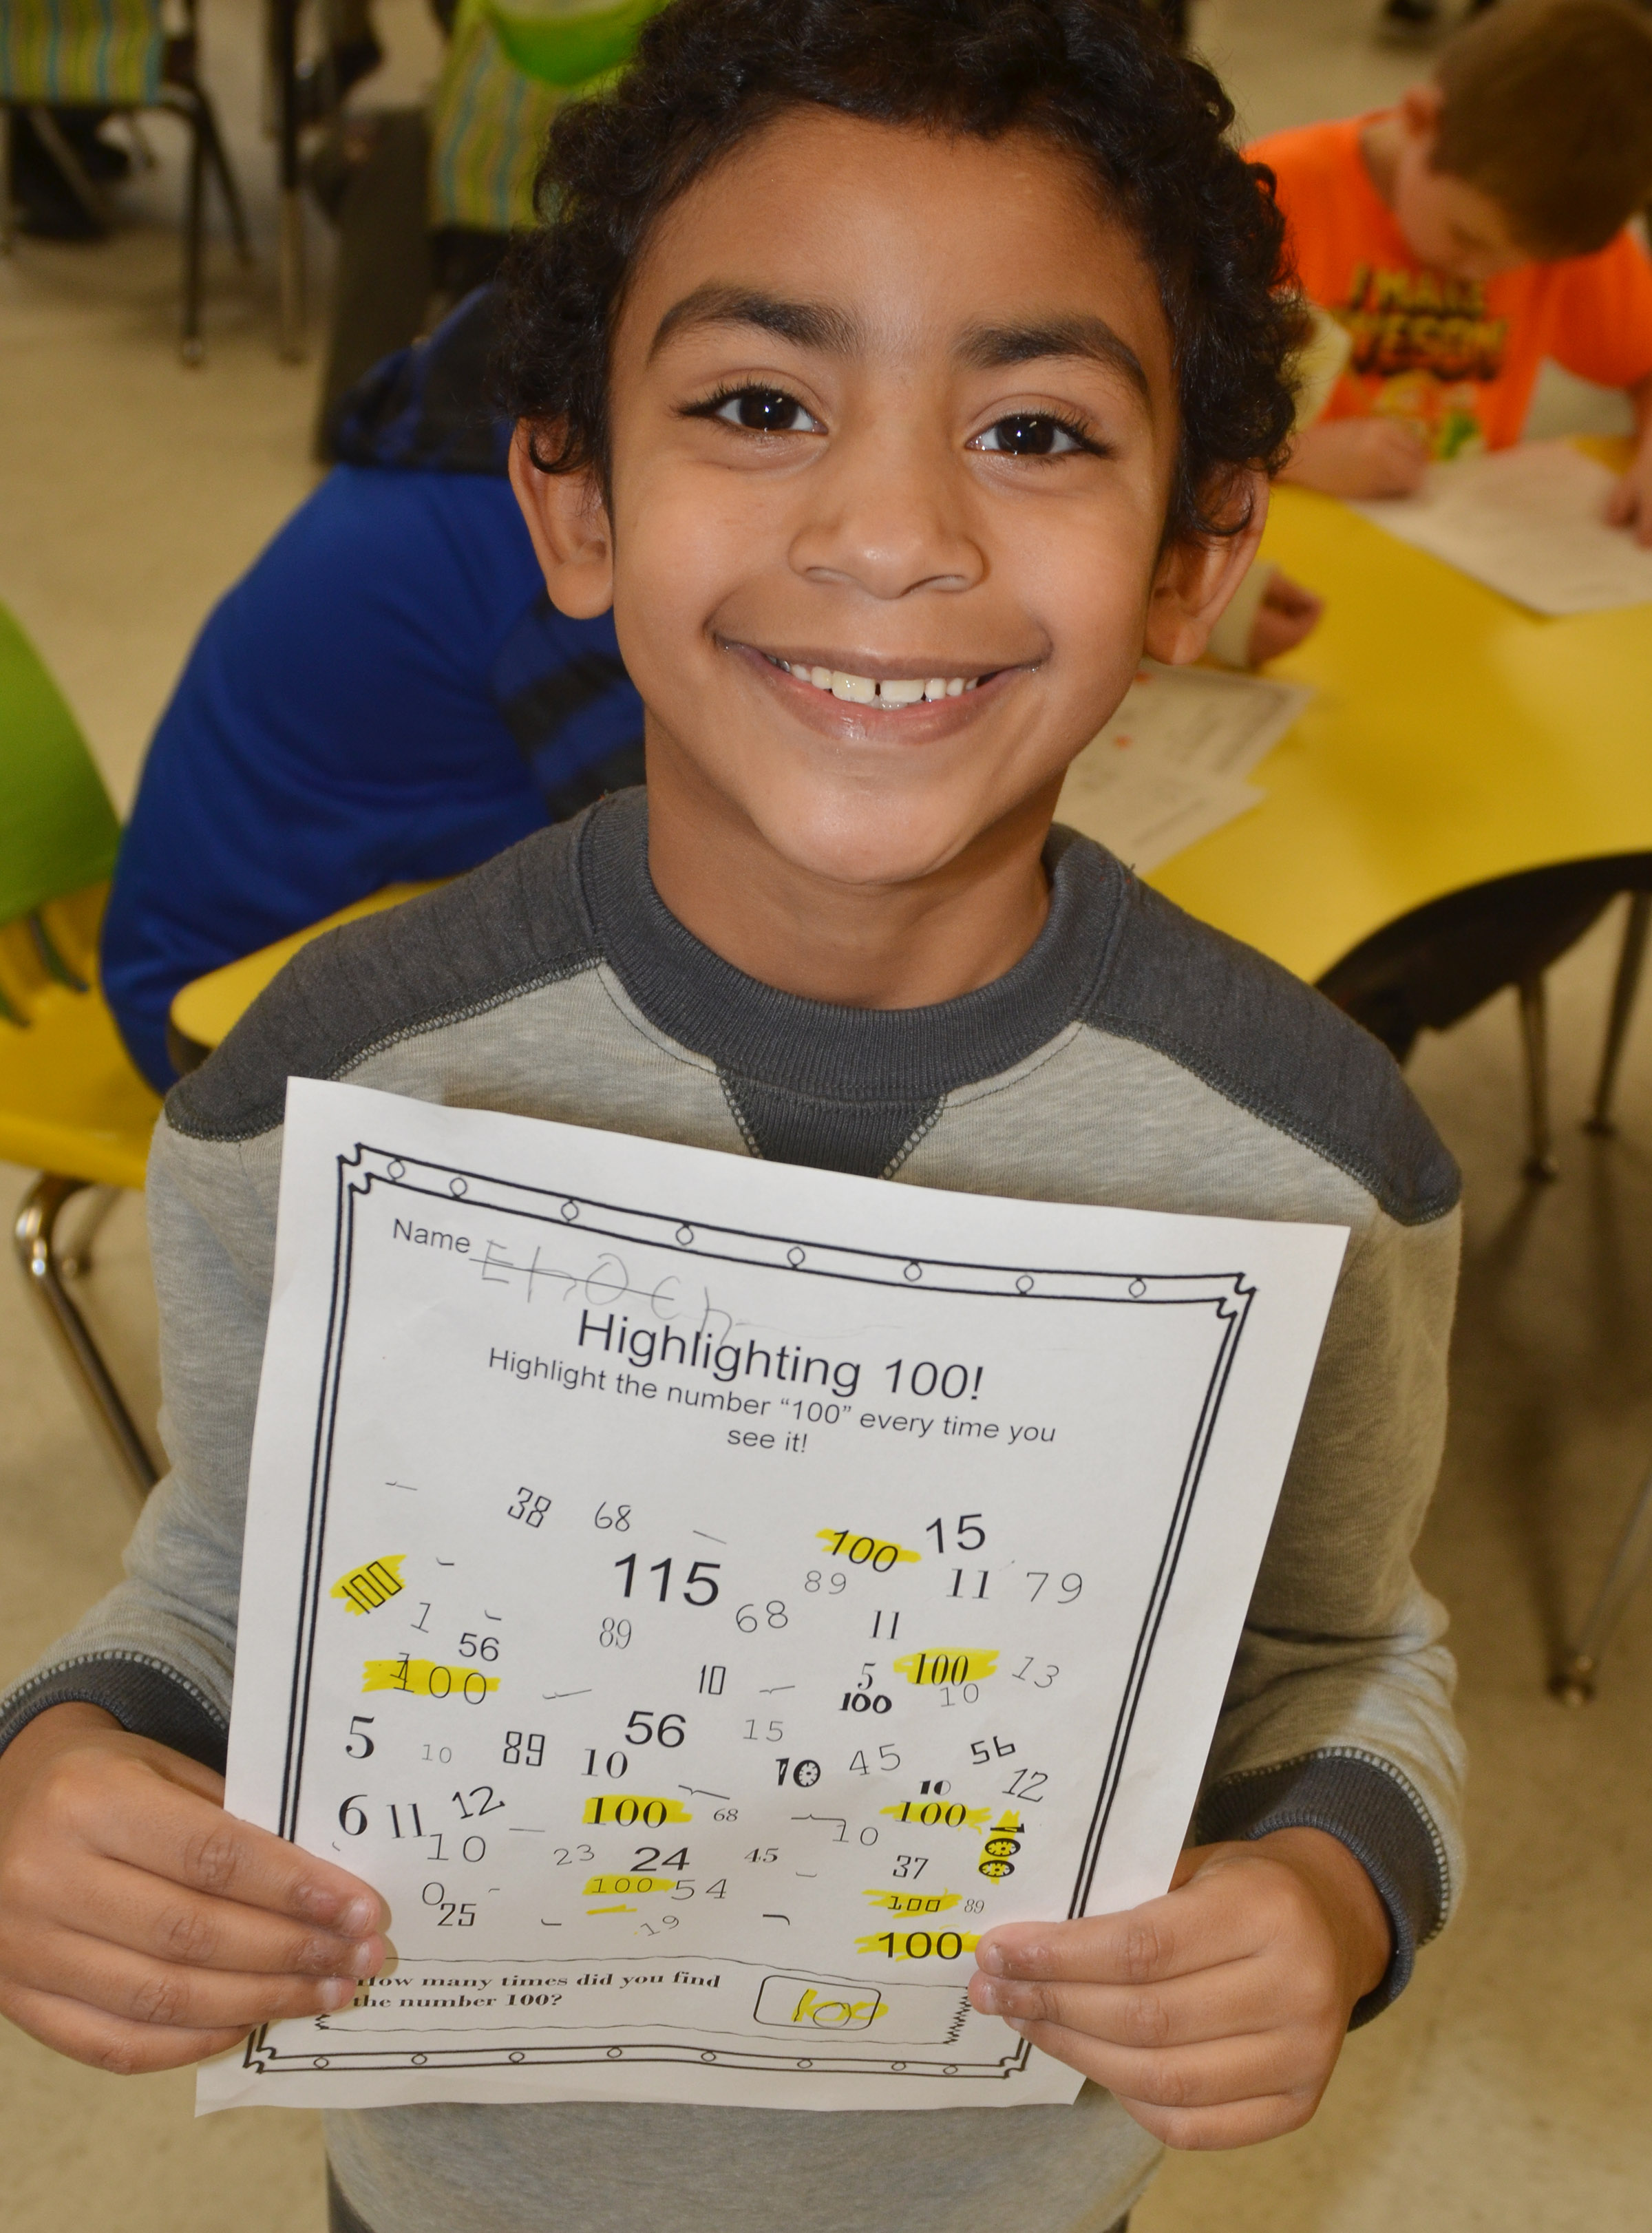 CES first-grader Enoch Smith highlights all the 100s in his worksheet of numbers.